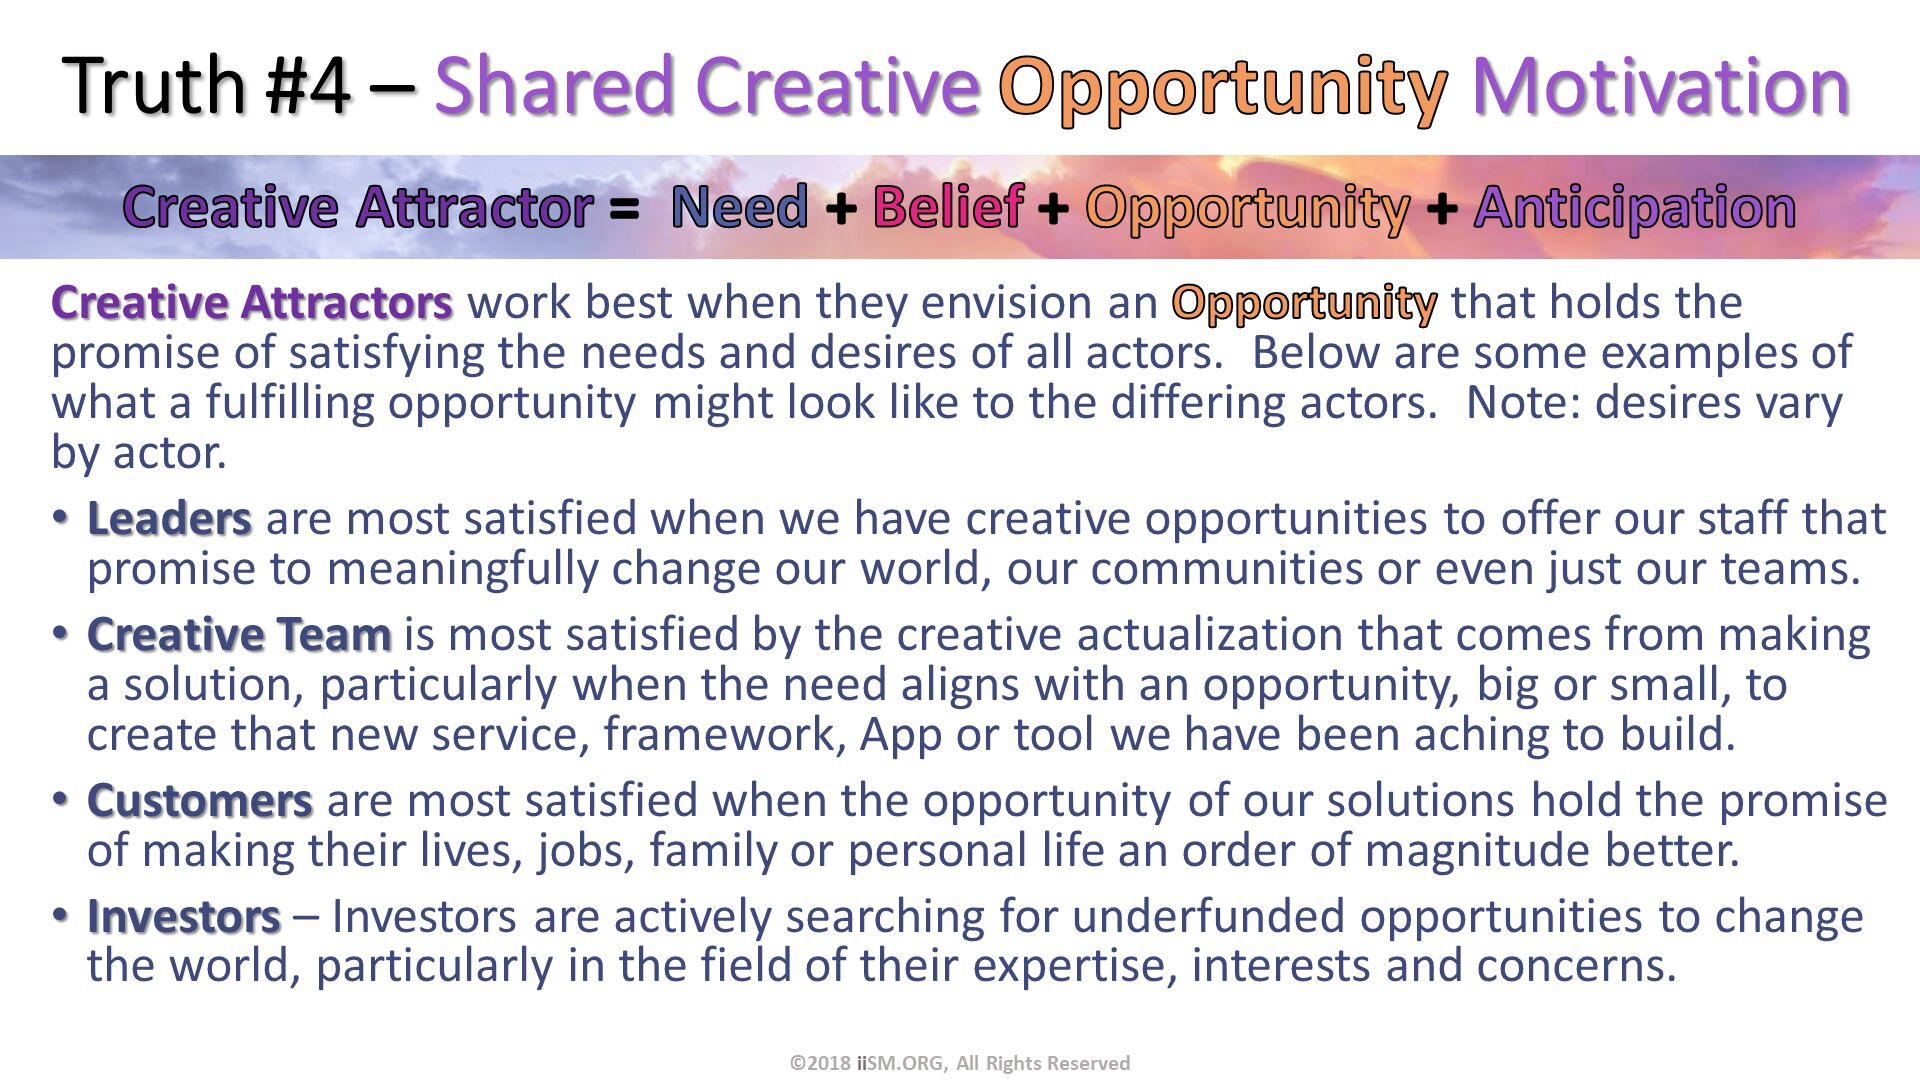 Truth #4 – Shared Creative Opportunity Motivation. Creative Attractors work best when they envision an Opportunity that holds the promise of satisfying the needs and desires of all actors.  Below are some examples of what a fulfilling opportunity might look like to the differing actors.  Note: desires vary by actor. Leaders are most satisfied when we have creative opportunities to offer our staff that promise to meaningfully change our world, our communities or even just our teams. Creative Team is most satisfied by the creative actualization that comes from making a solution, particularly when the need aligns with an opportunity, big or small, to create that new service, framework, App or tool we have been aching to build.  Customers are most satisfied when the opportunity of our solutions hold the promise of making their lives, jobs, family or personal life an order of magnitude better. Investors – Investors are actively searching for underfunded opportunities to change the world, particularly in the field of their expertise, interests and concerns. ©2018 iiSM.ORG, All Rights Reserved.